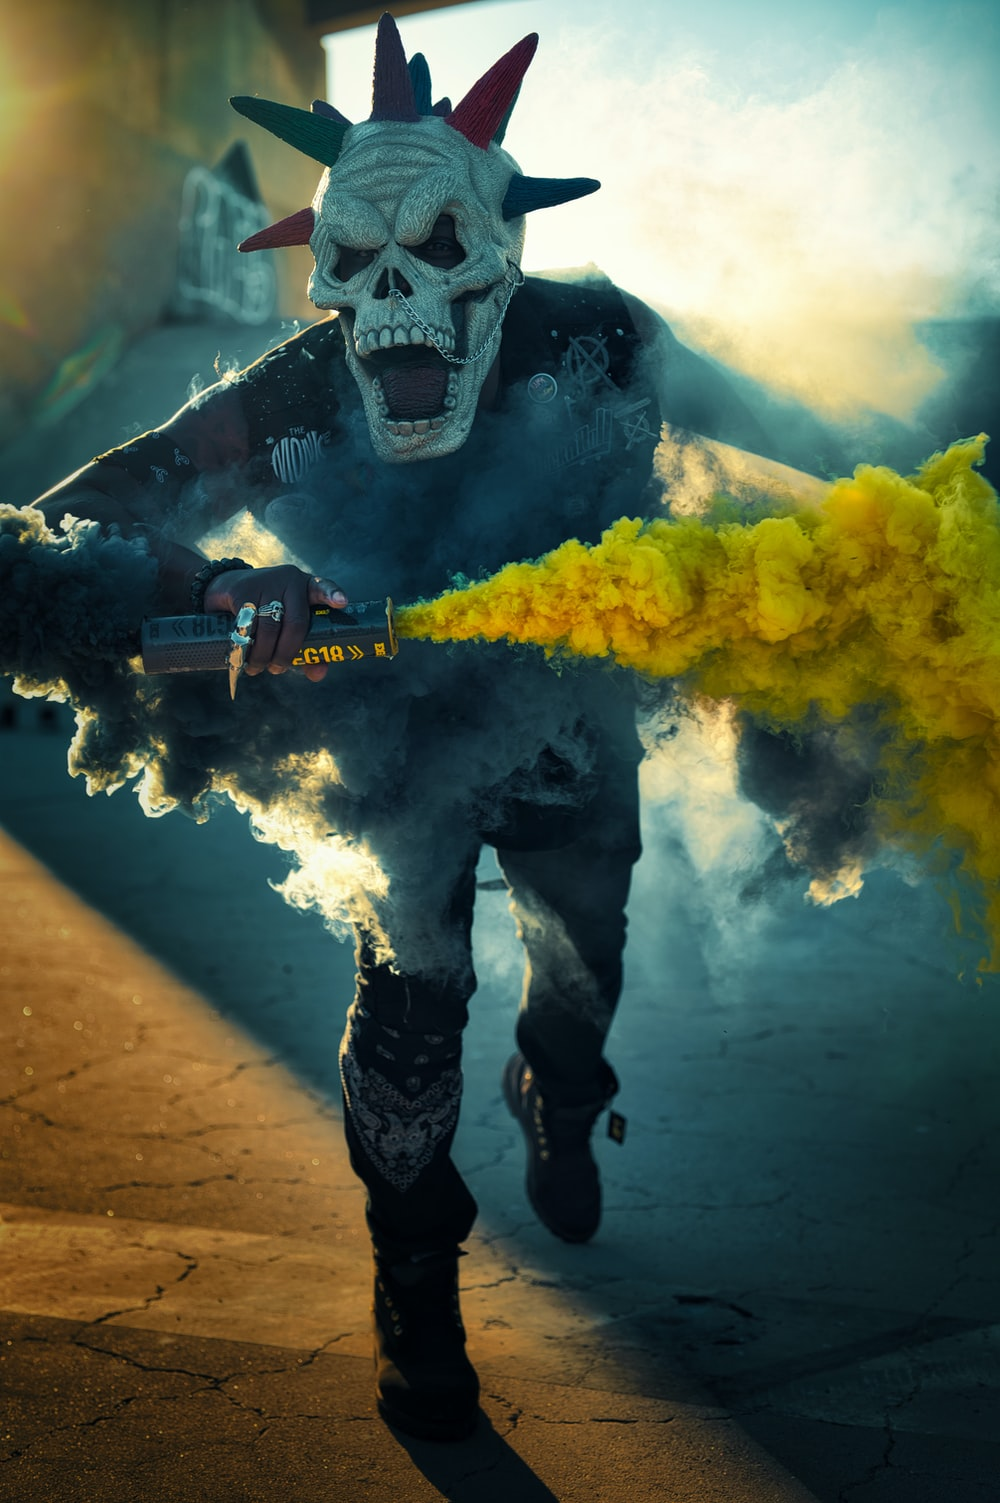 man in black and white mask holding black and yellow power tool